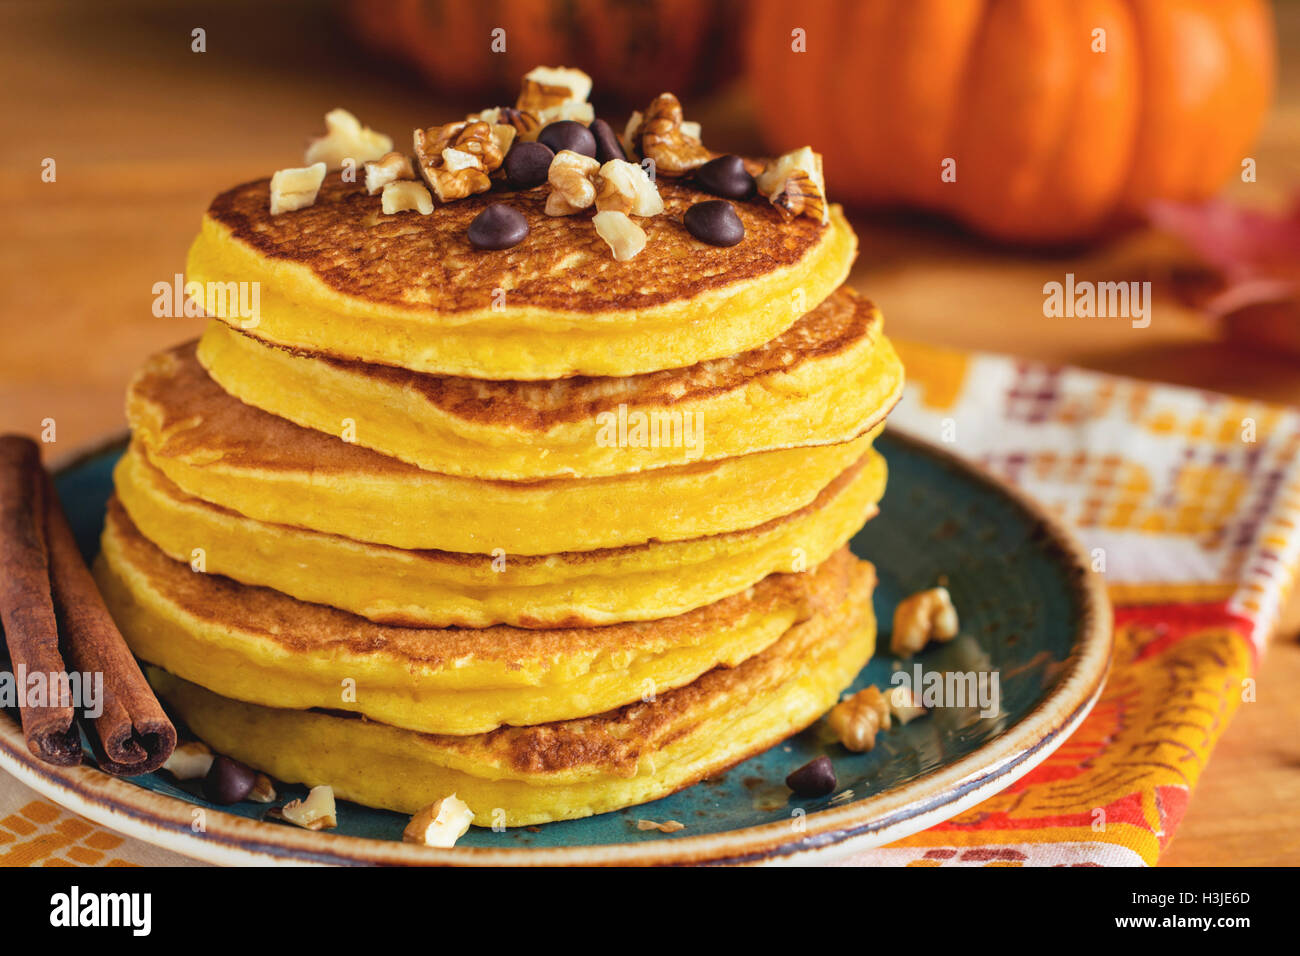 Pumpkin pancakes with nuts and chocolate on plate. Close up. Autumn breakfast meal, traditional American cuisine Stock Photo